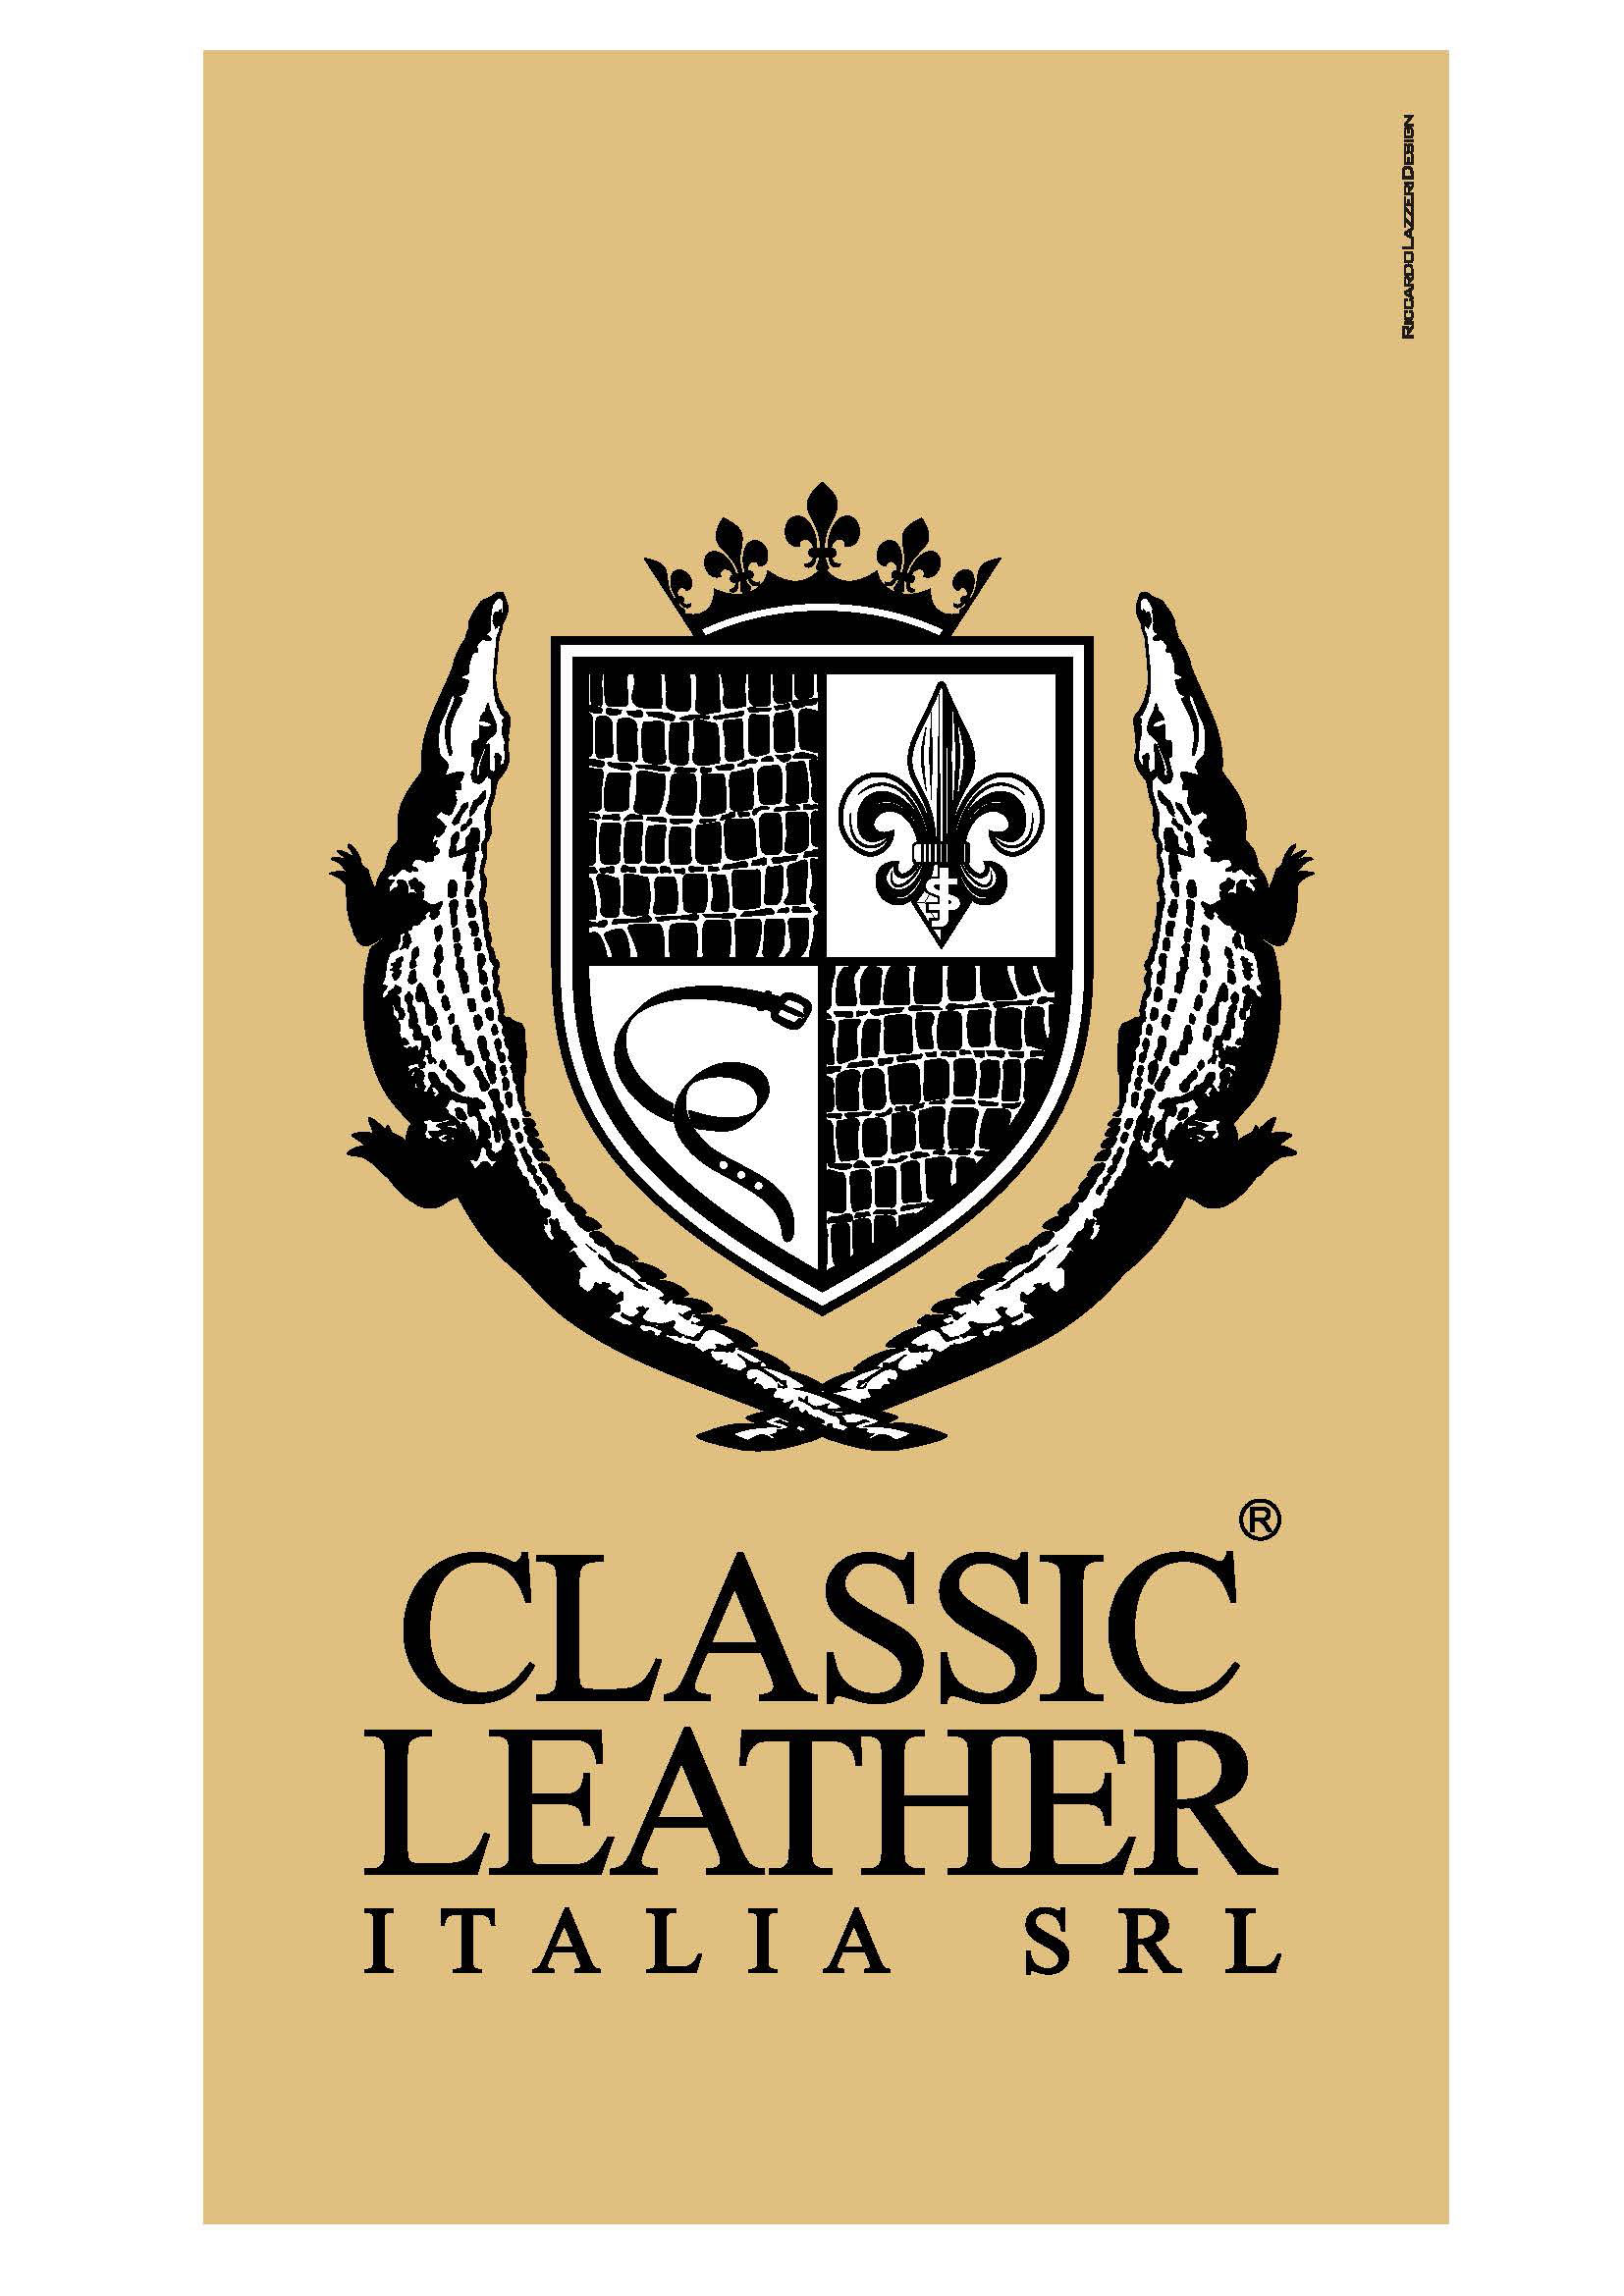 CLASSIC LEATHER logo